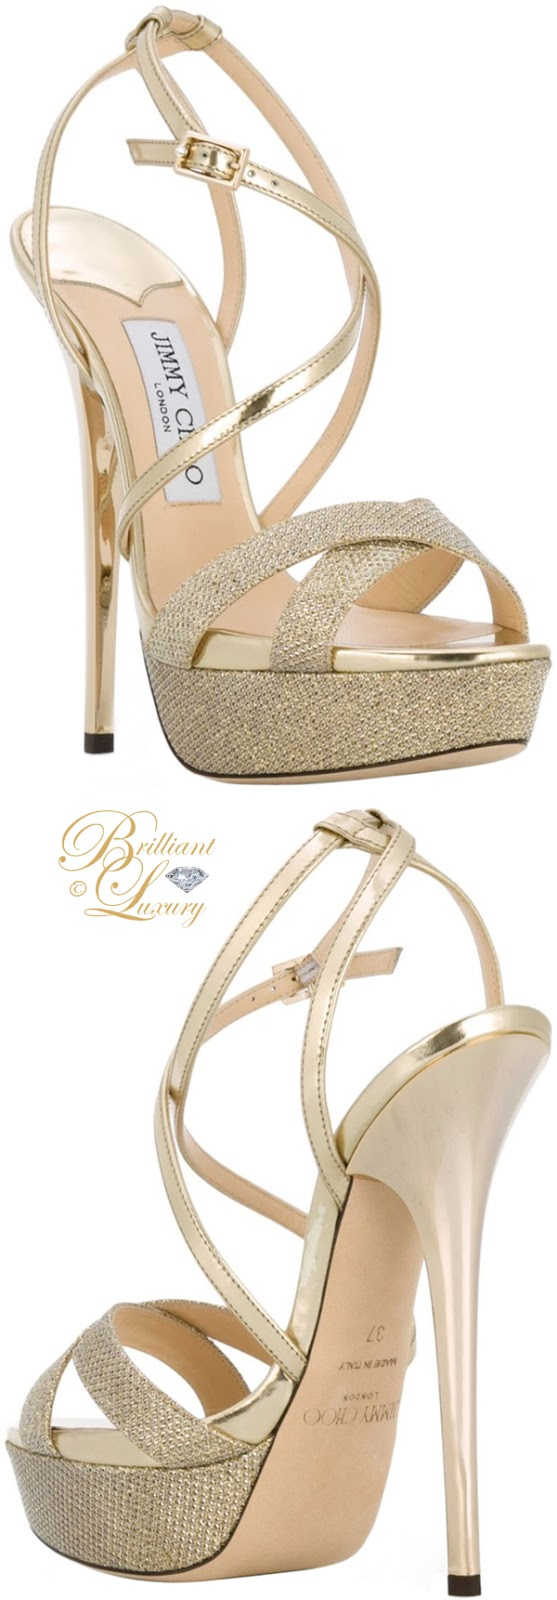 Brilliant Luxury ♦ Jimmy Choo Liddie platform sandals